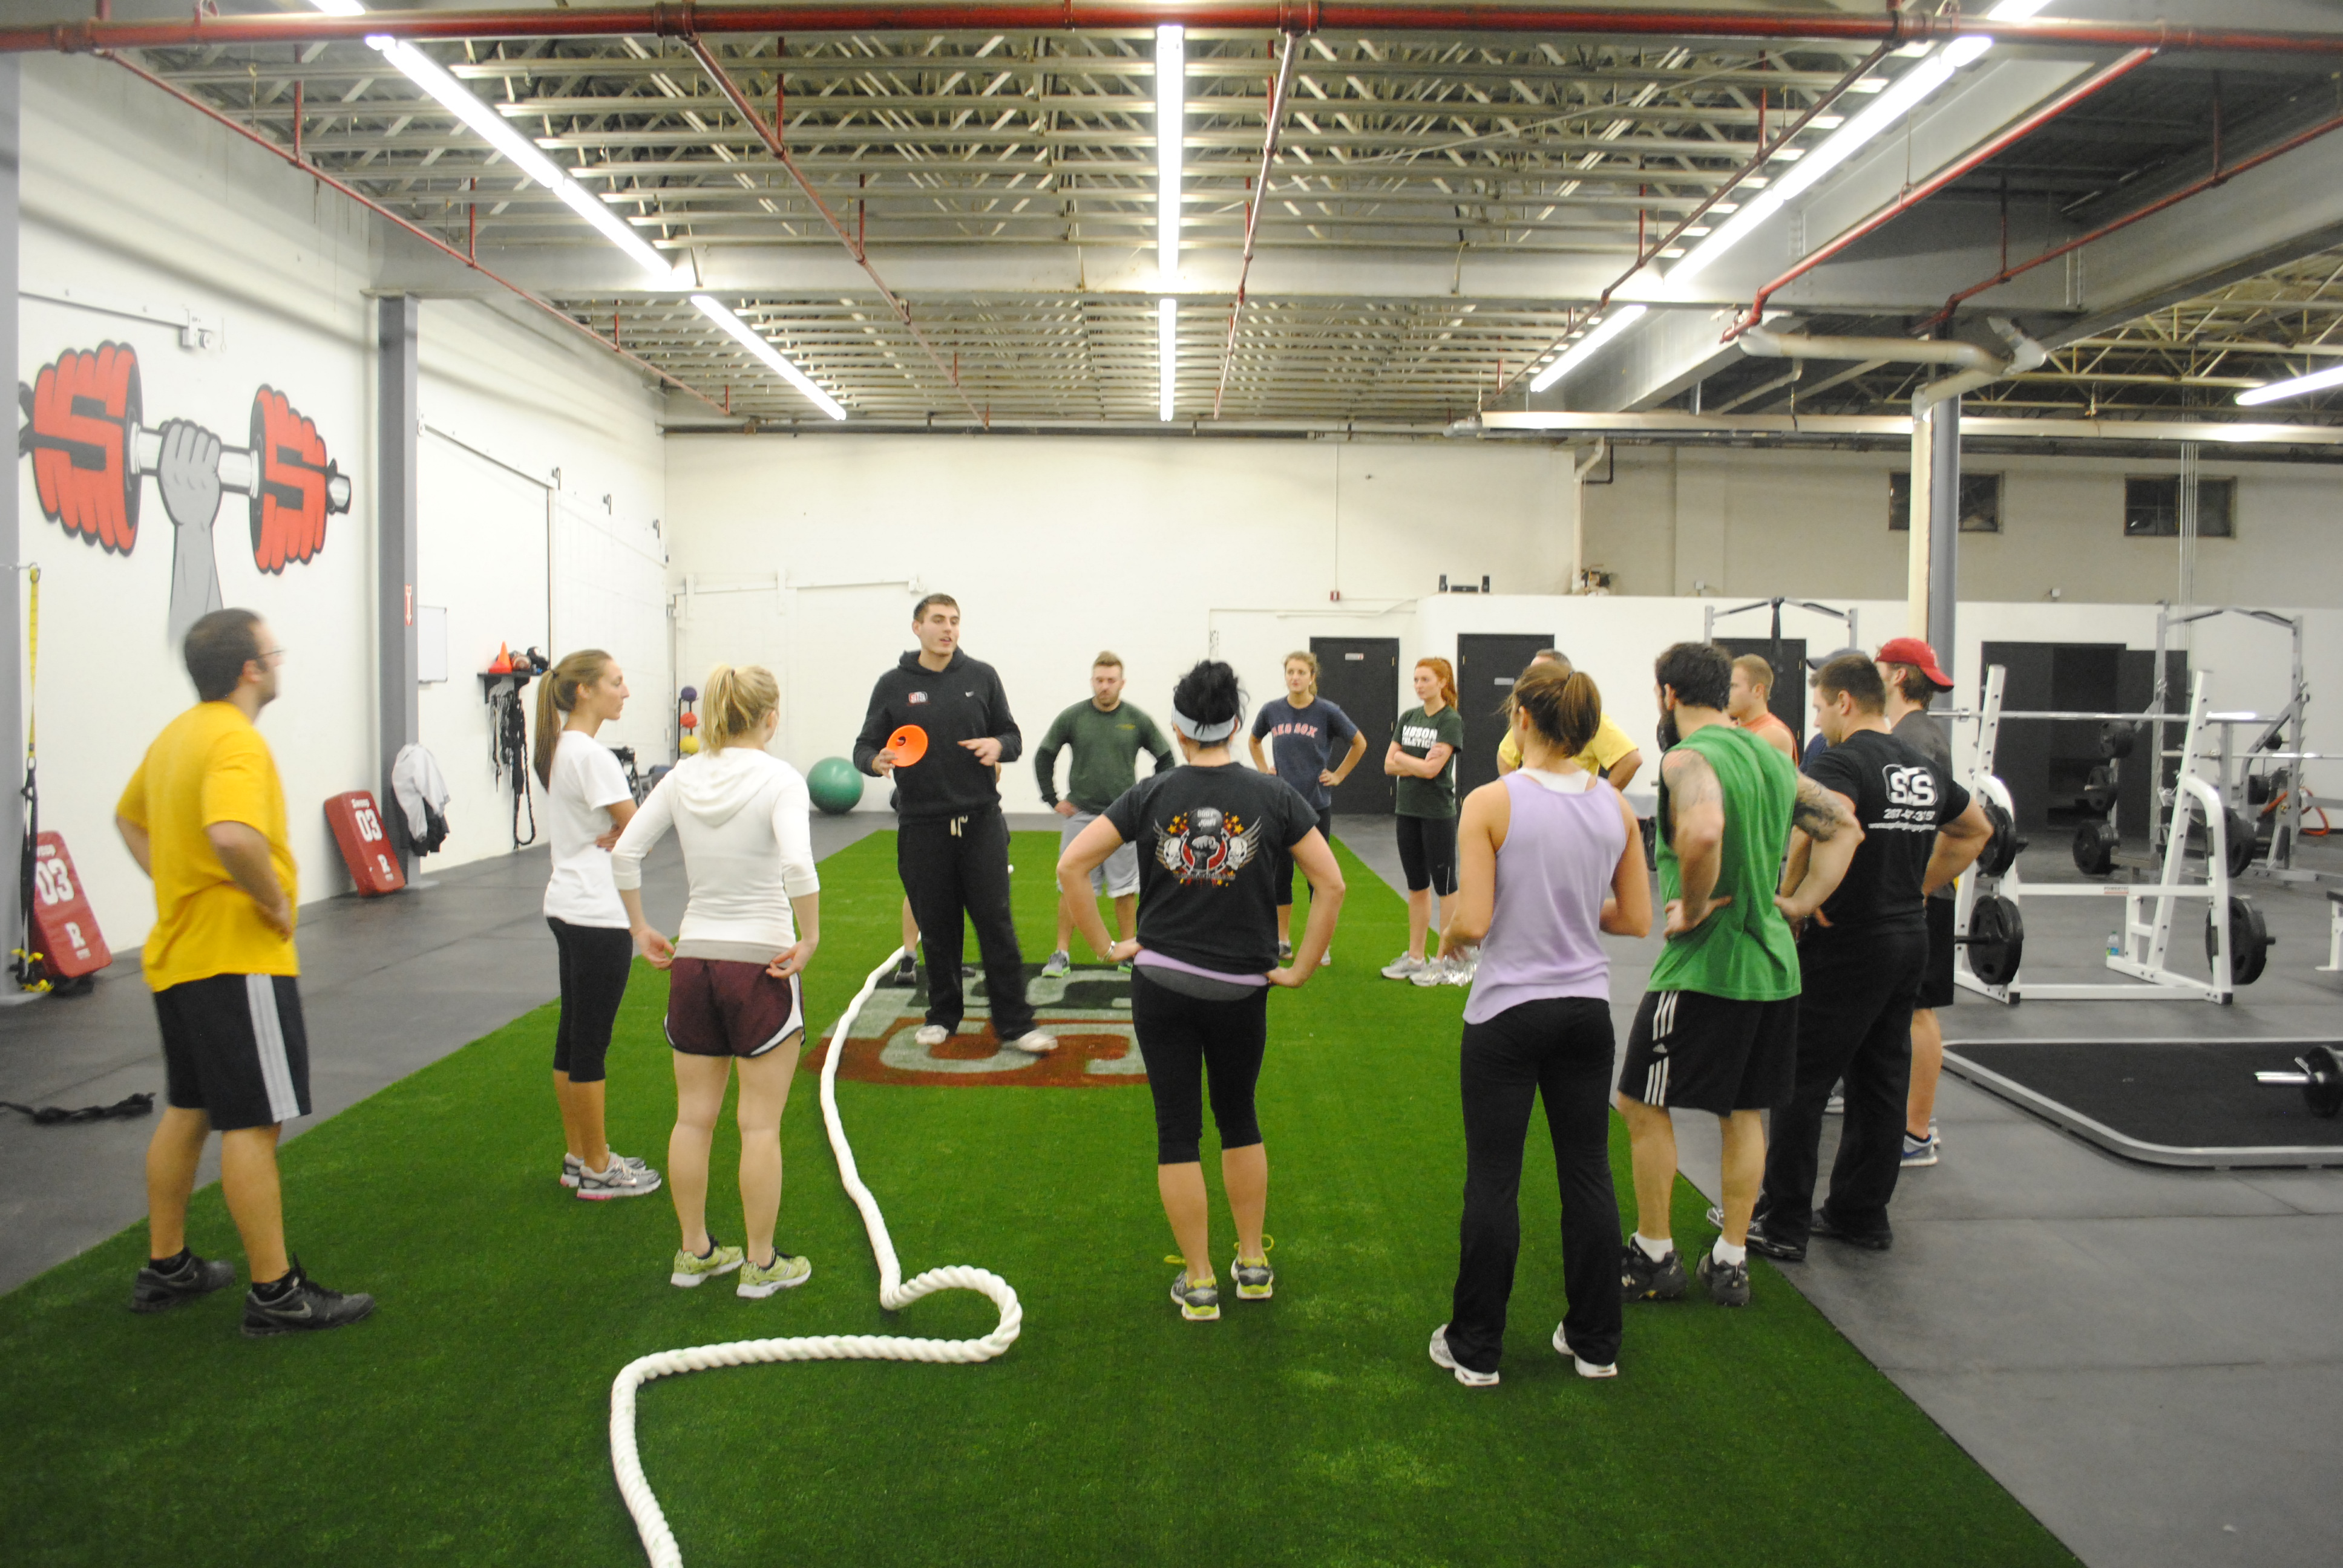 7 Things Every Strength & Conditioning Facility Should Have